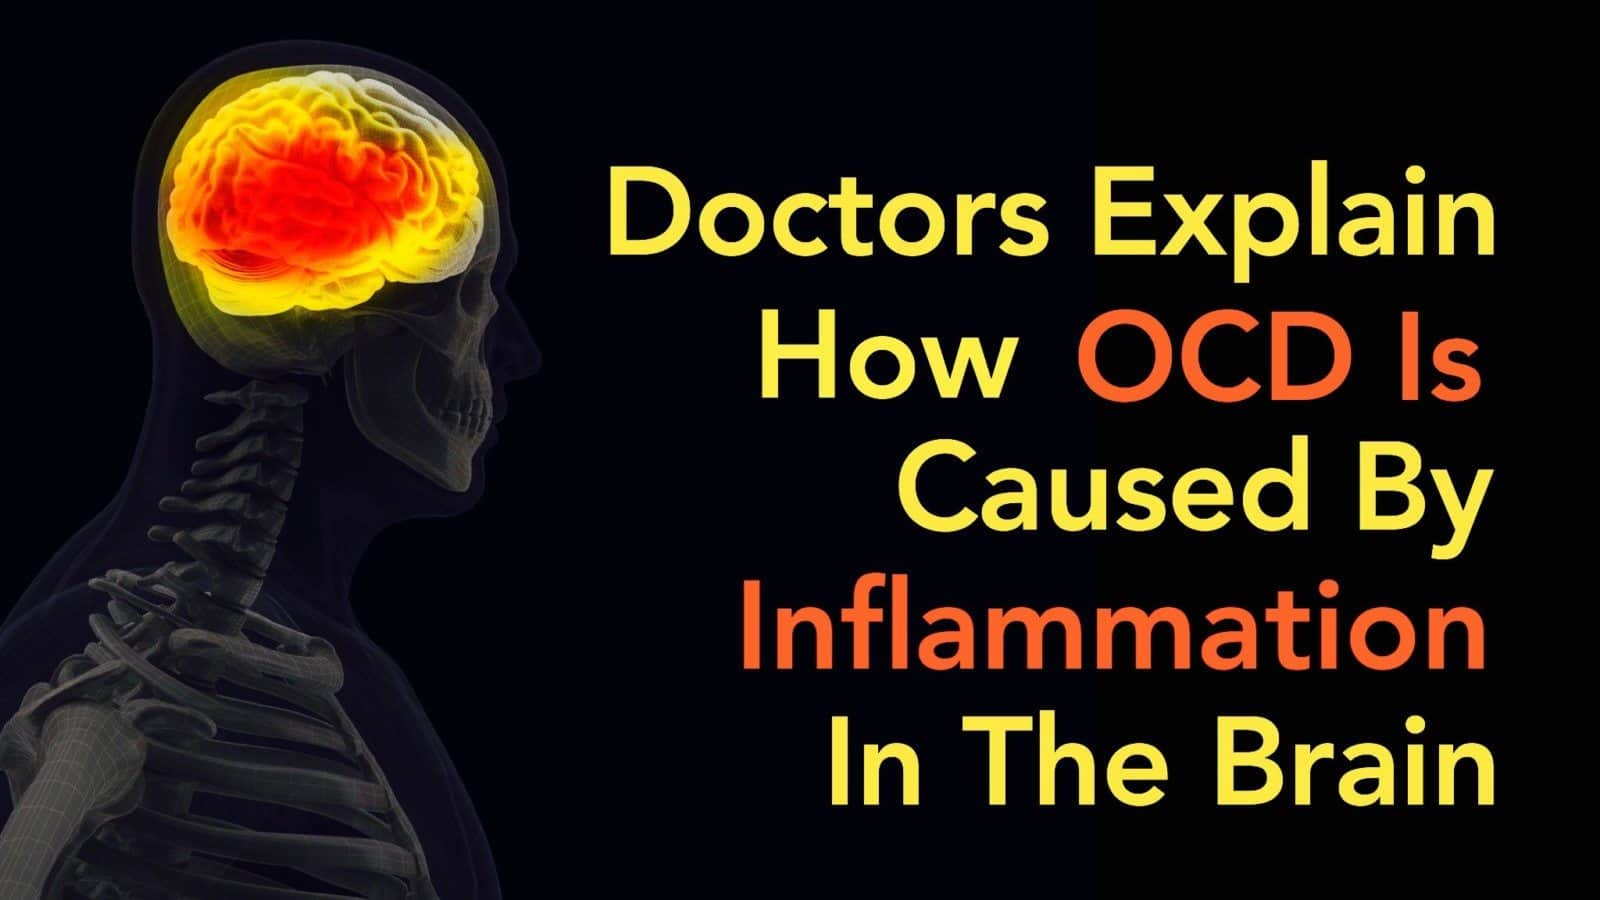 Doctors Explain How OCD Is Caused By Inflammation In The Brain